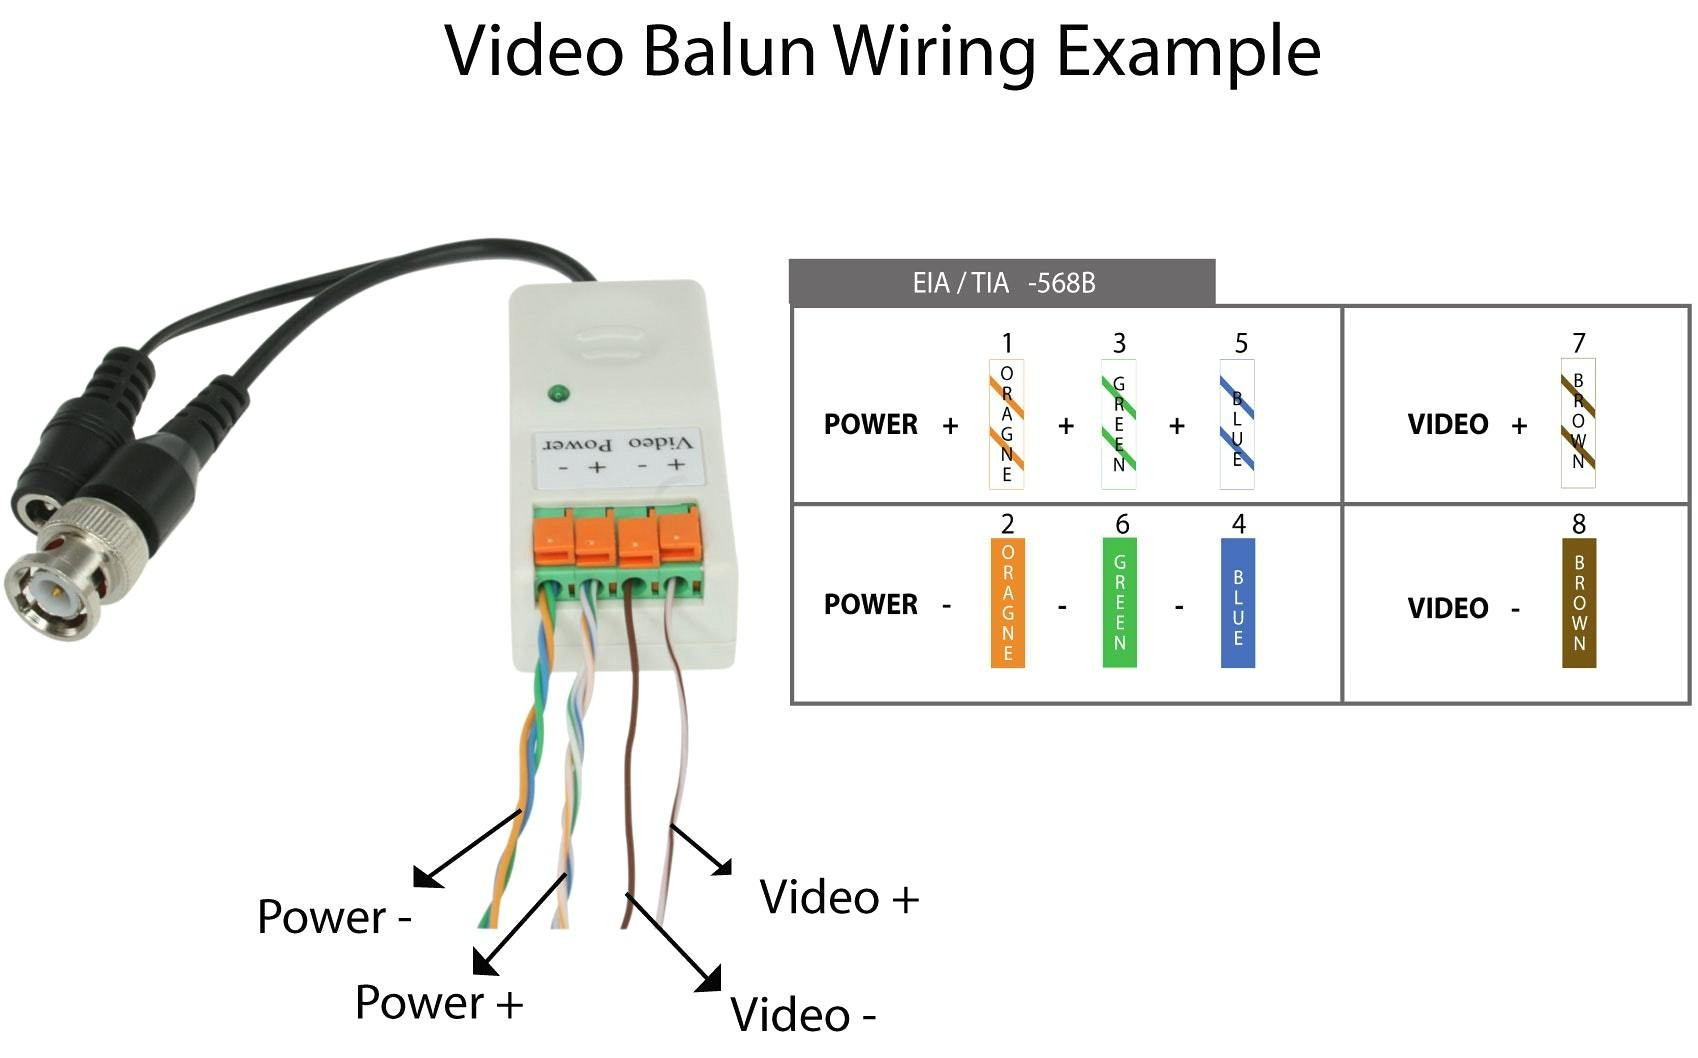 Usb To Rj45 Wiring Diagram | Best Wiring Library - Rj45 To Usb Cable Wiring Diagram